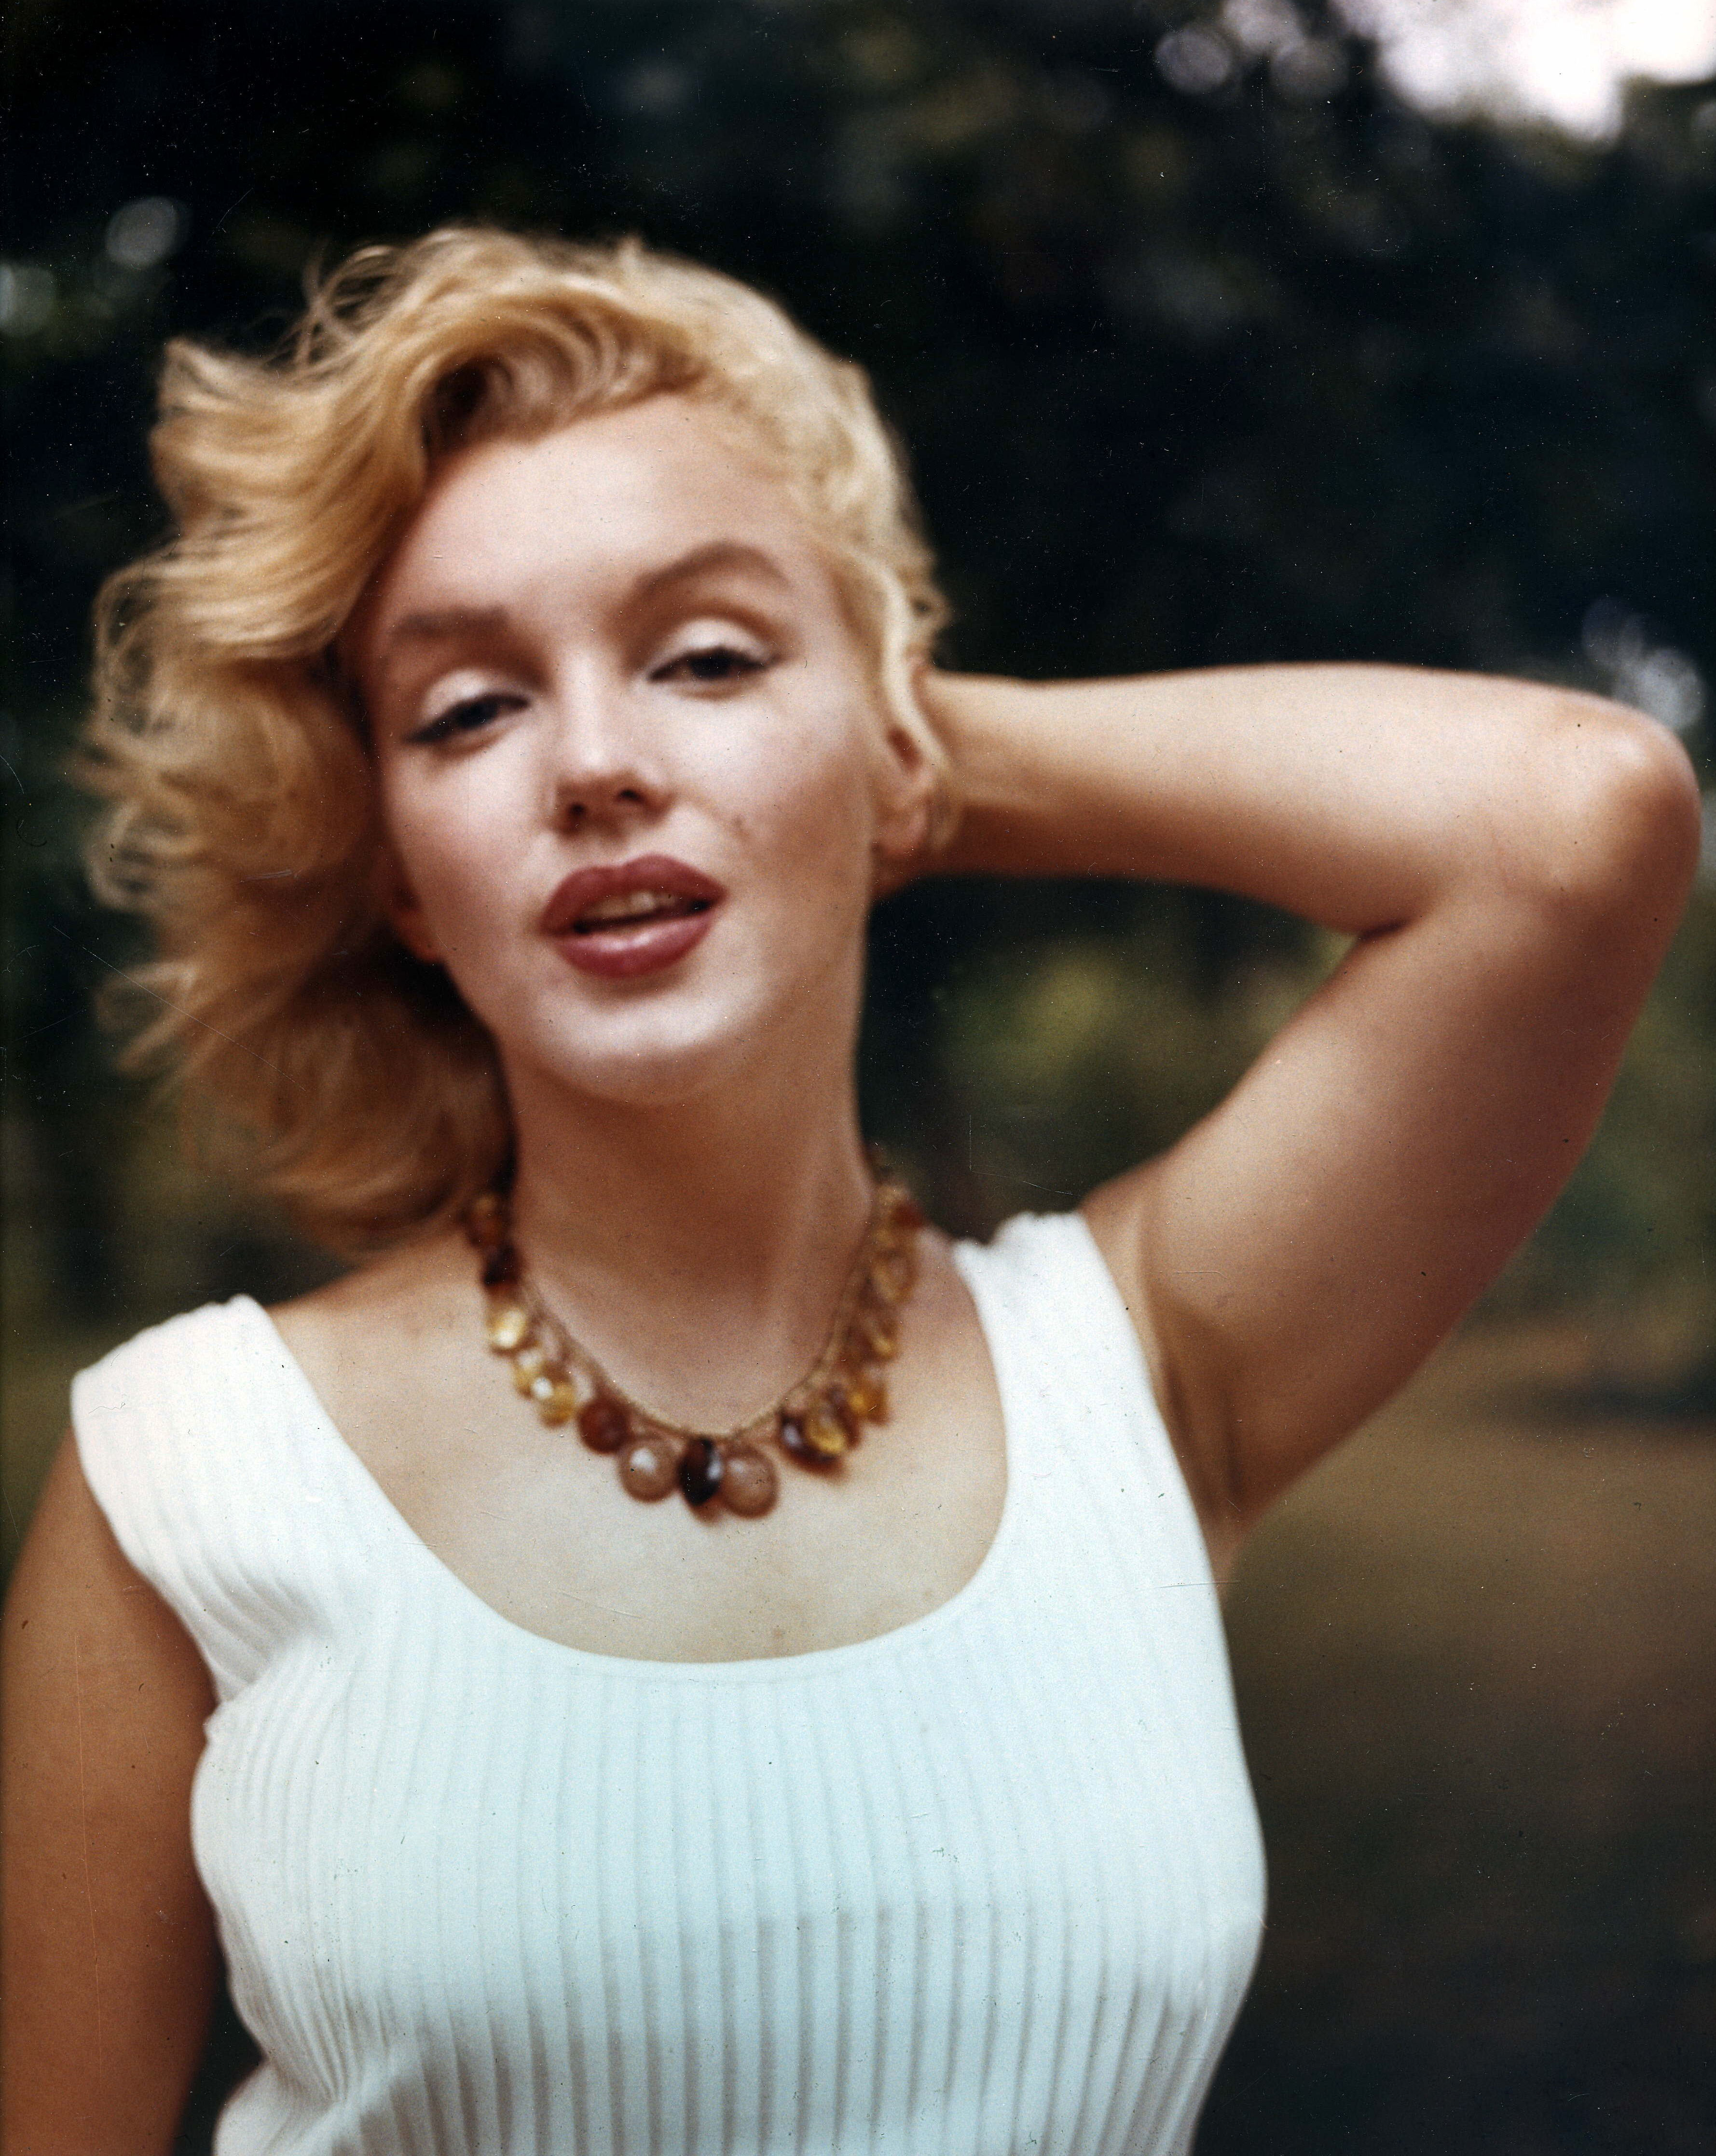 Women marilyn Monroe girl HD Wallpaper